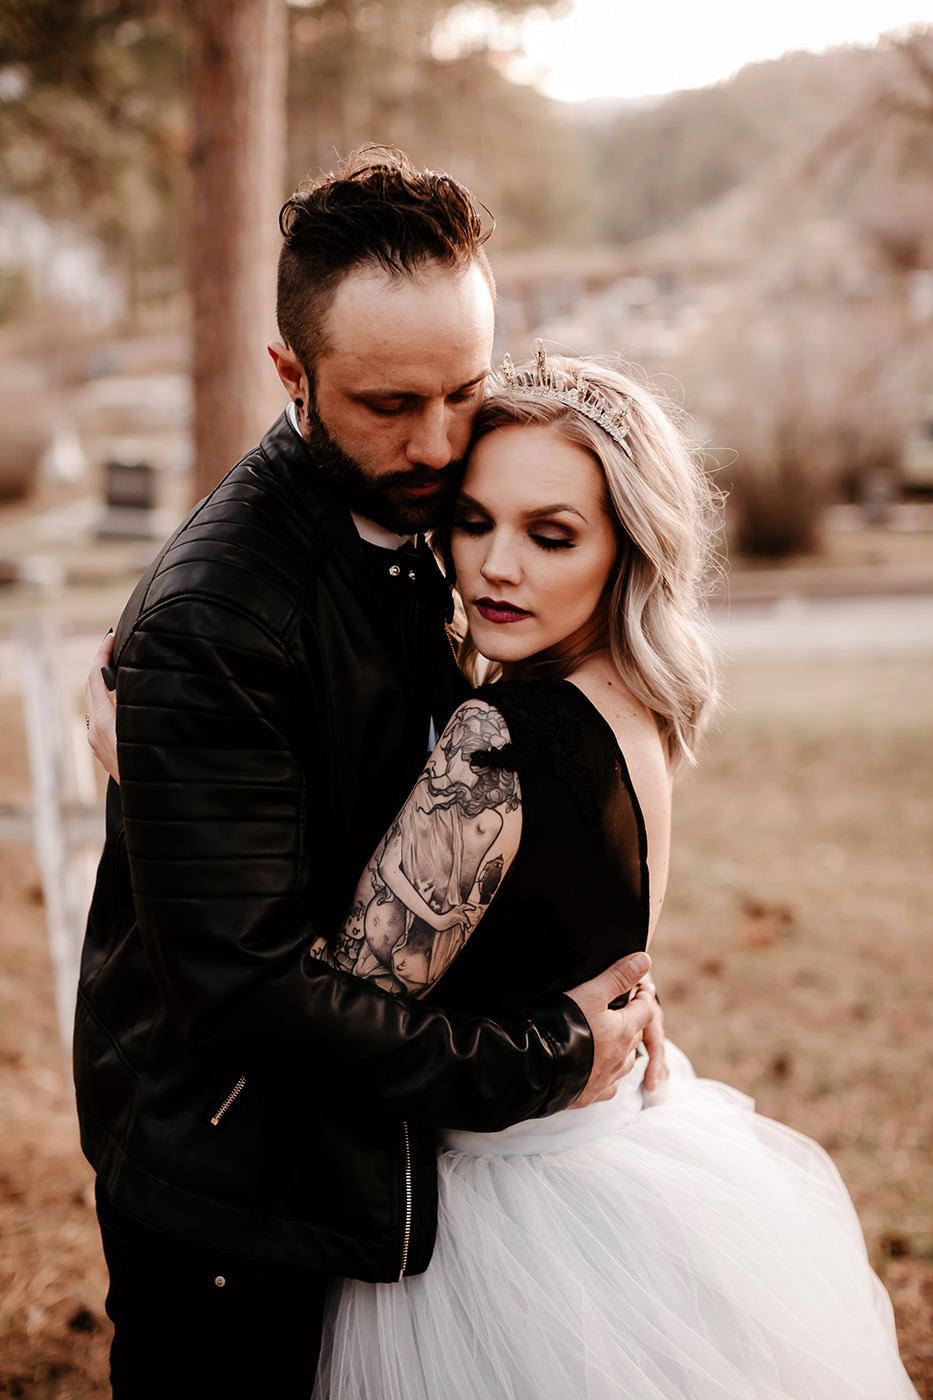 Liz Osban Photography Wedding Elopement Eloped engaged engagement couples session photographer deadwood south dakota wyoming beautiful vintage moody colorado mountains vintage best vintage lease martin mason hotel 104.jpg